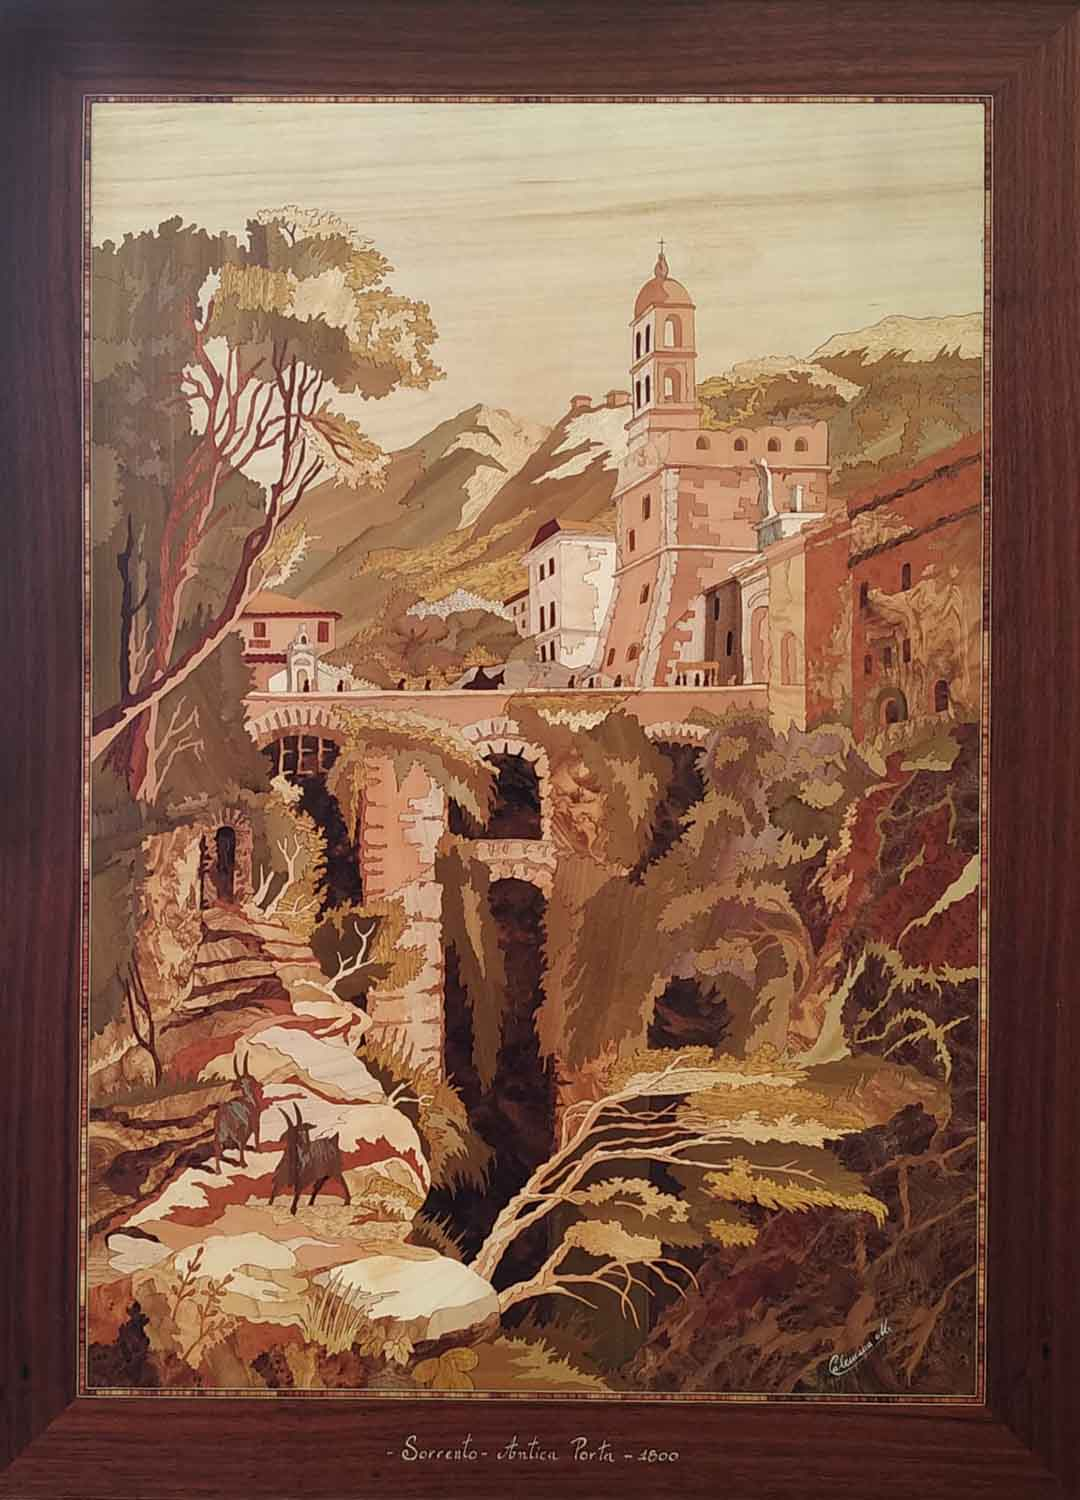 Michele CALEMMA (Massa Lubrense 1949), Sorrento's ancient gate 1800, 2012